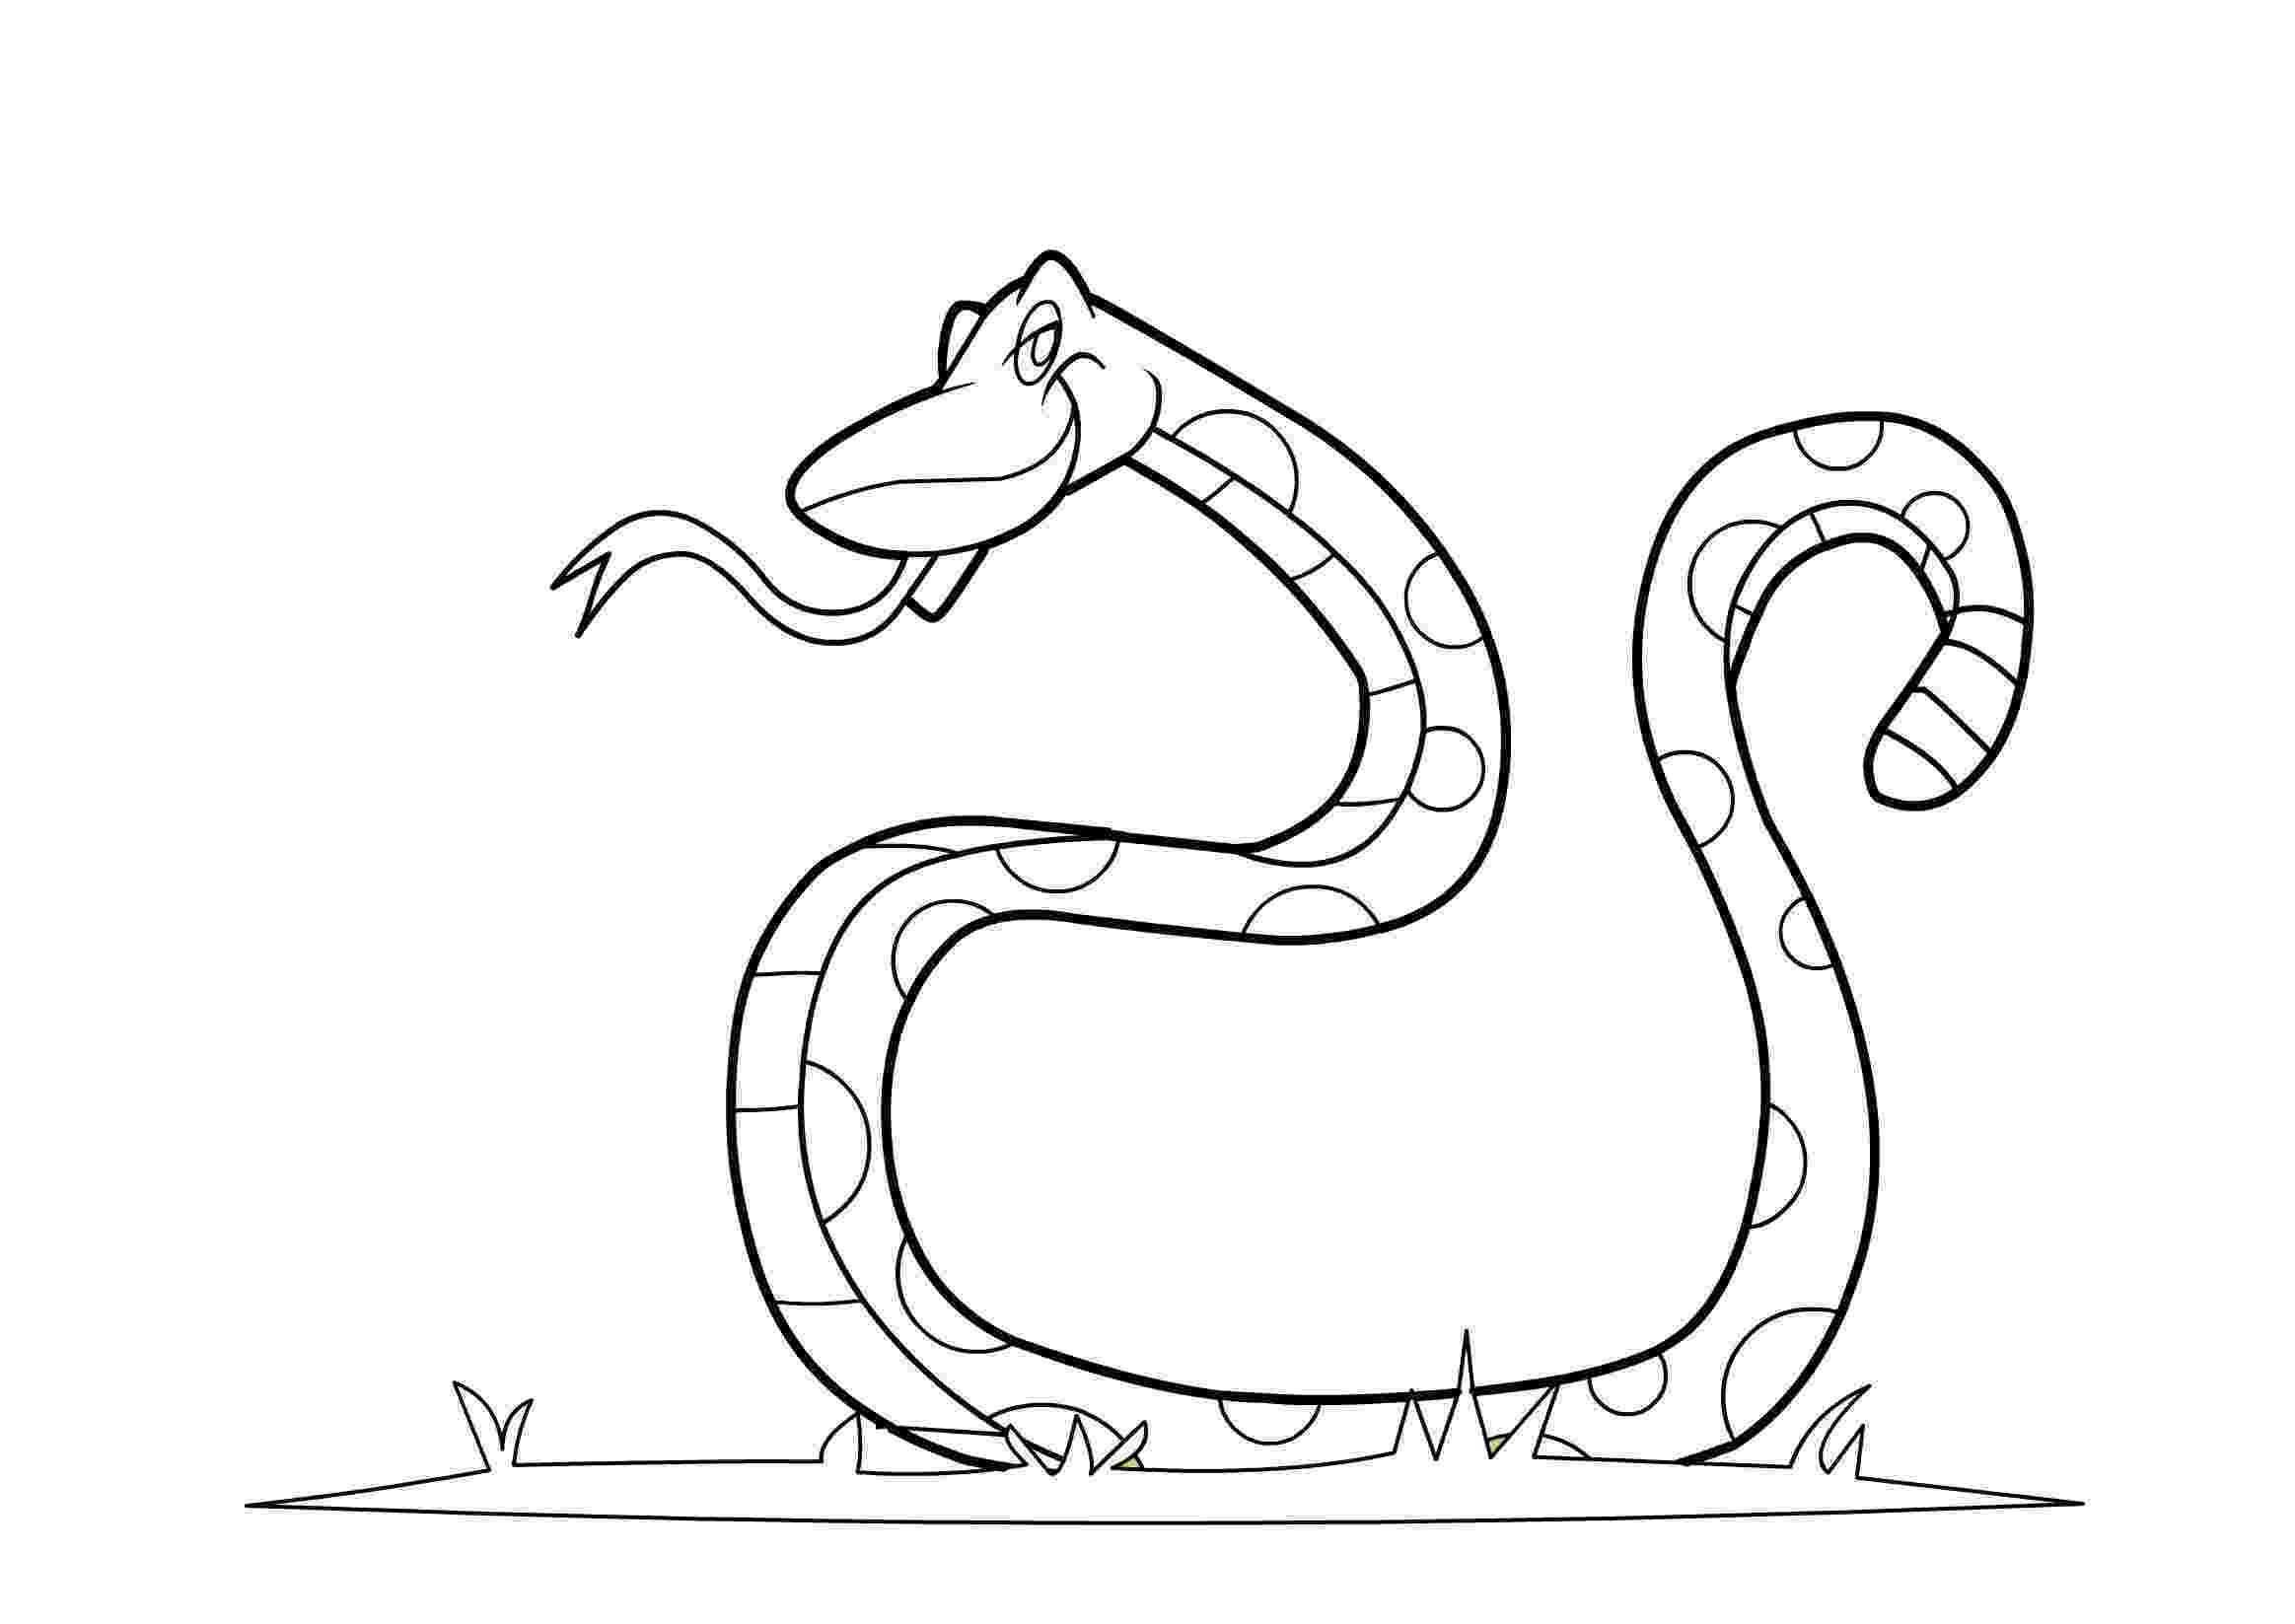 rattlesnake coloring pages rattlesnake coloring pages e1531692860244 snake coloring rattlesnake pages coloring